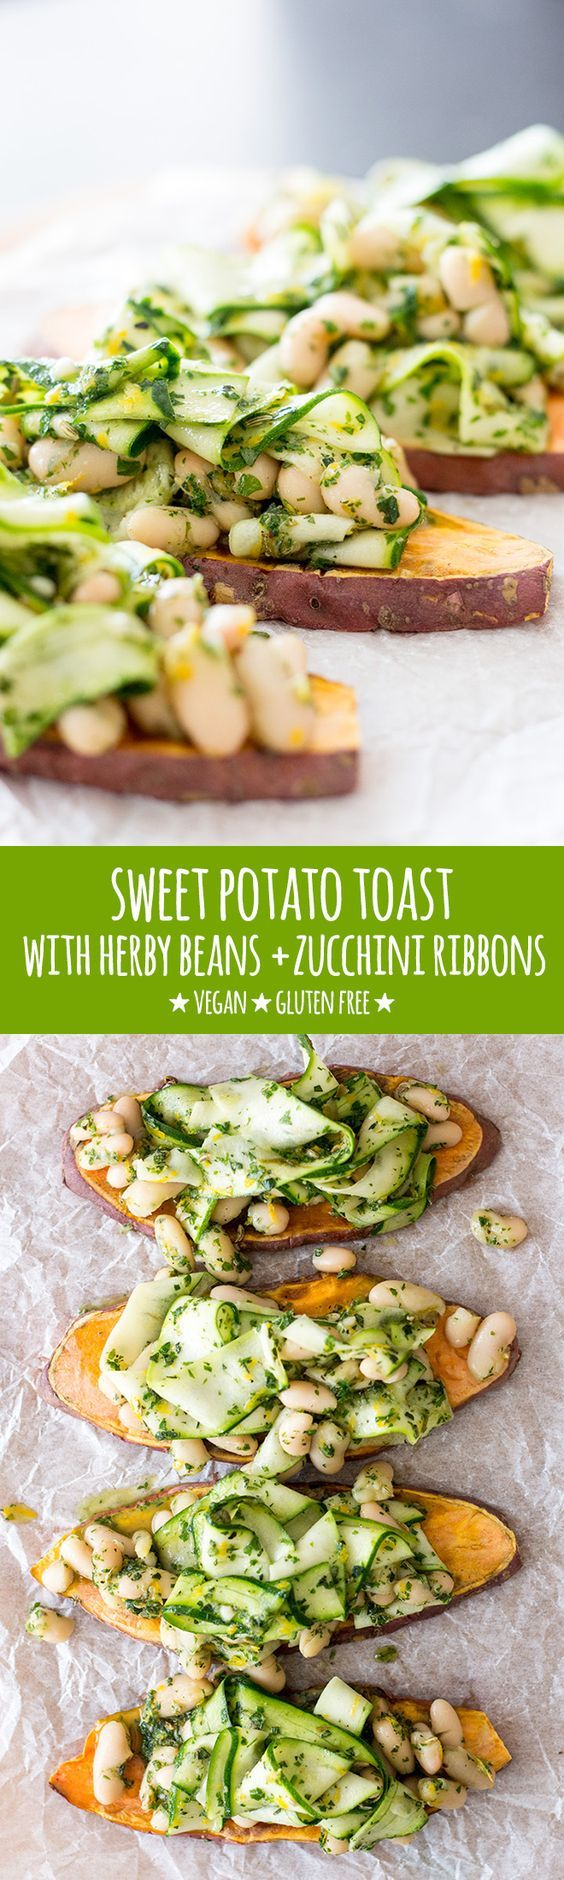 Sweet potato toast topped with cannellini beans and zucchini ribbons tossed in a beautifully balanced herb and lemon dressing makes a tasty and simple meal. #vegan #vegetarian #glu| healthy recipe ideas @xhealthyrecipex |